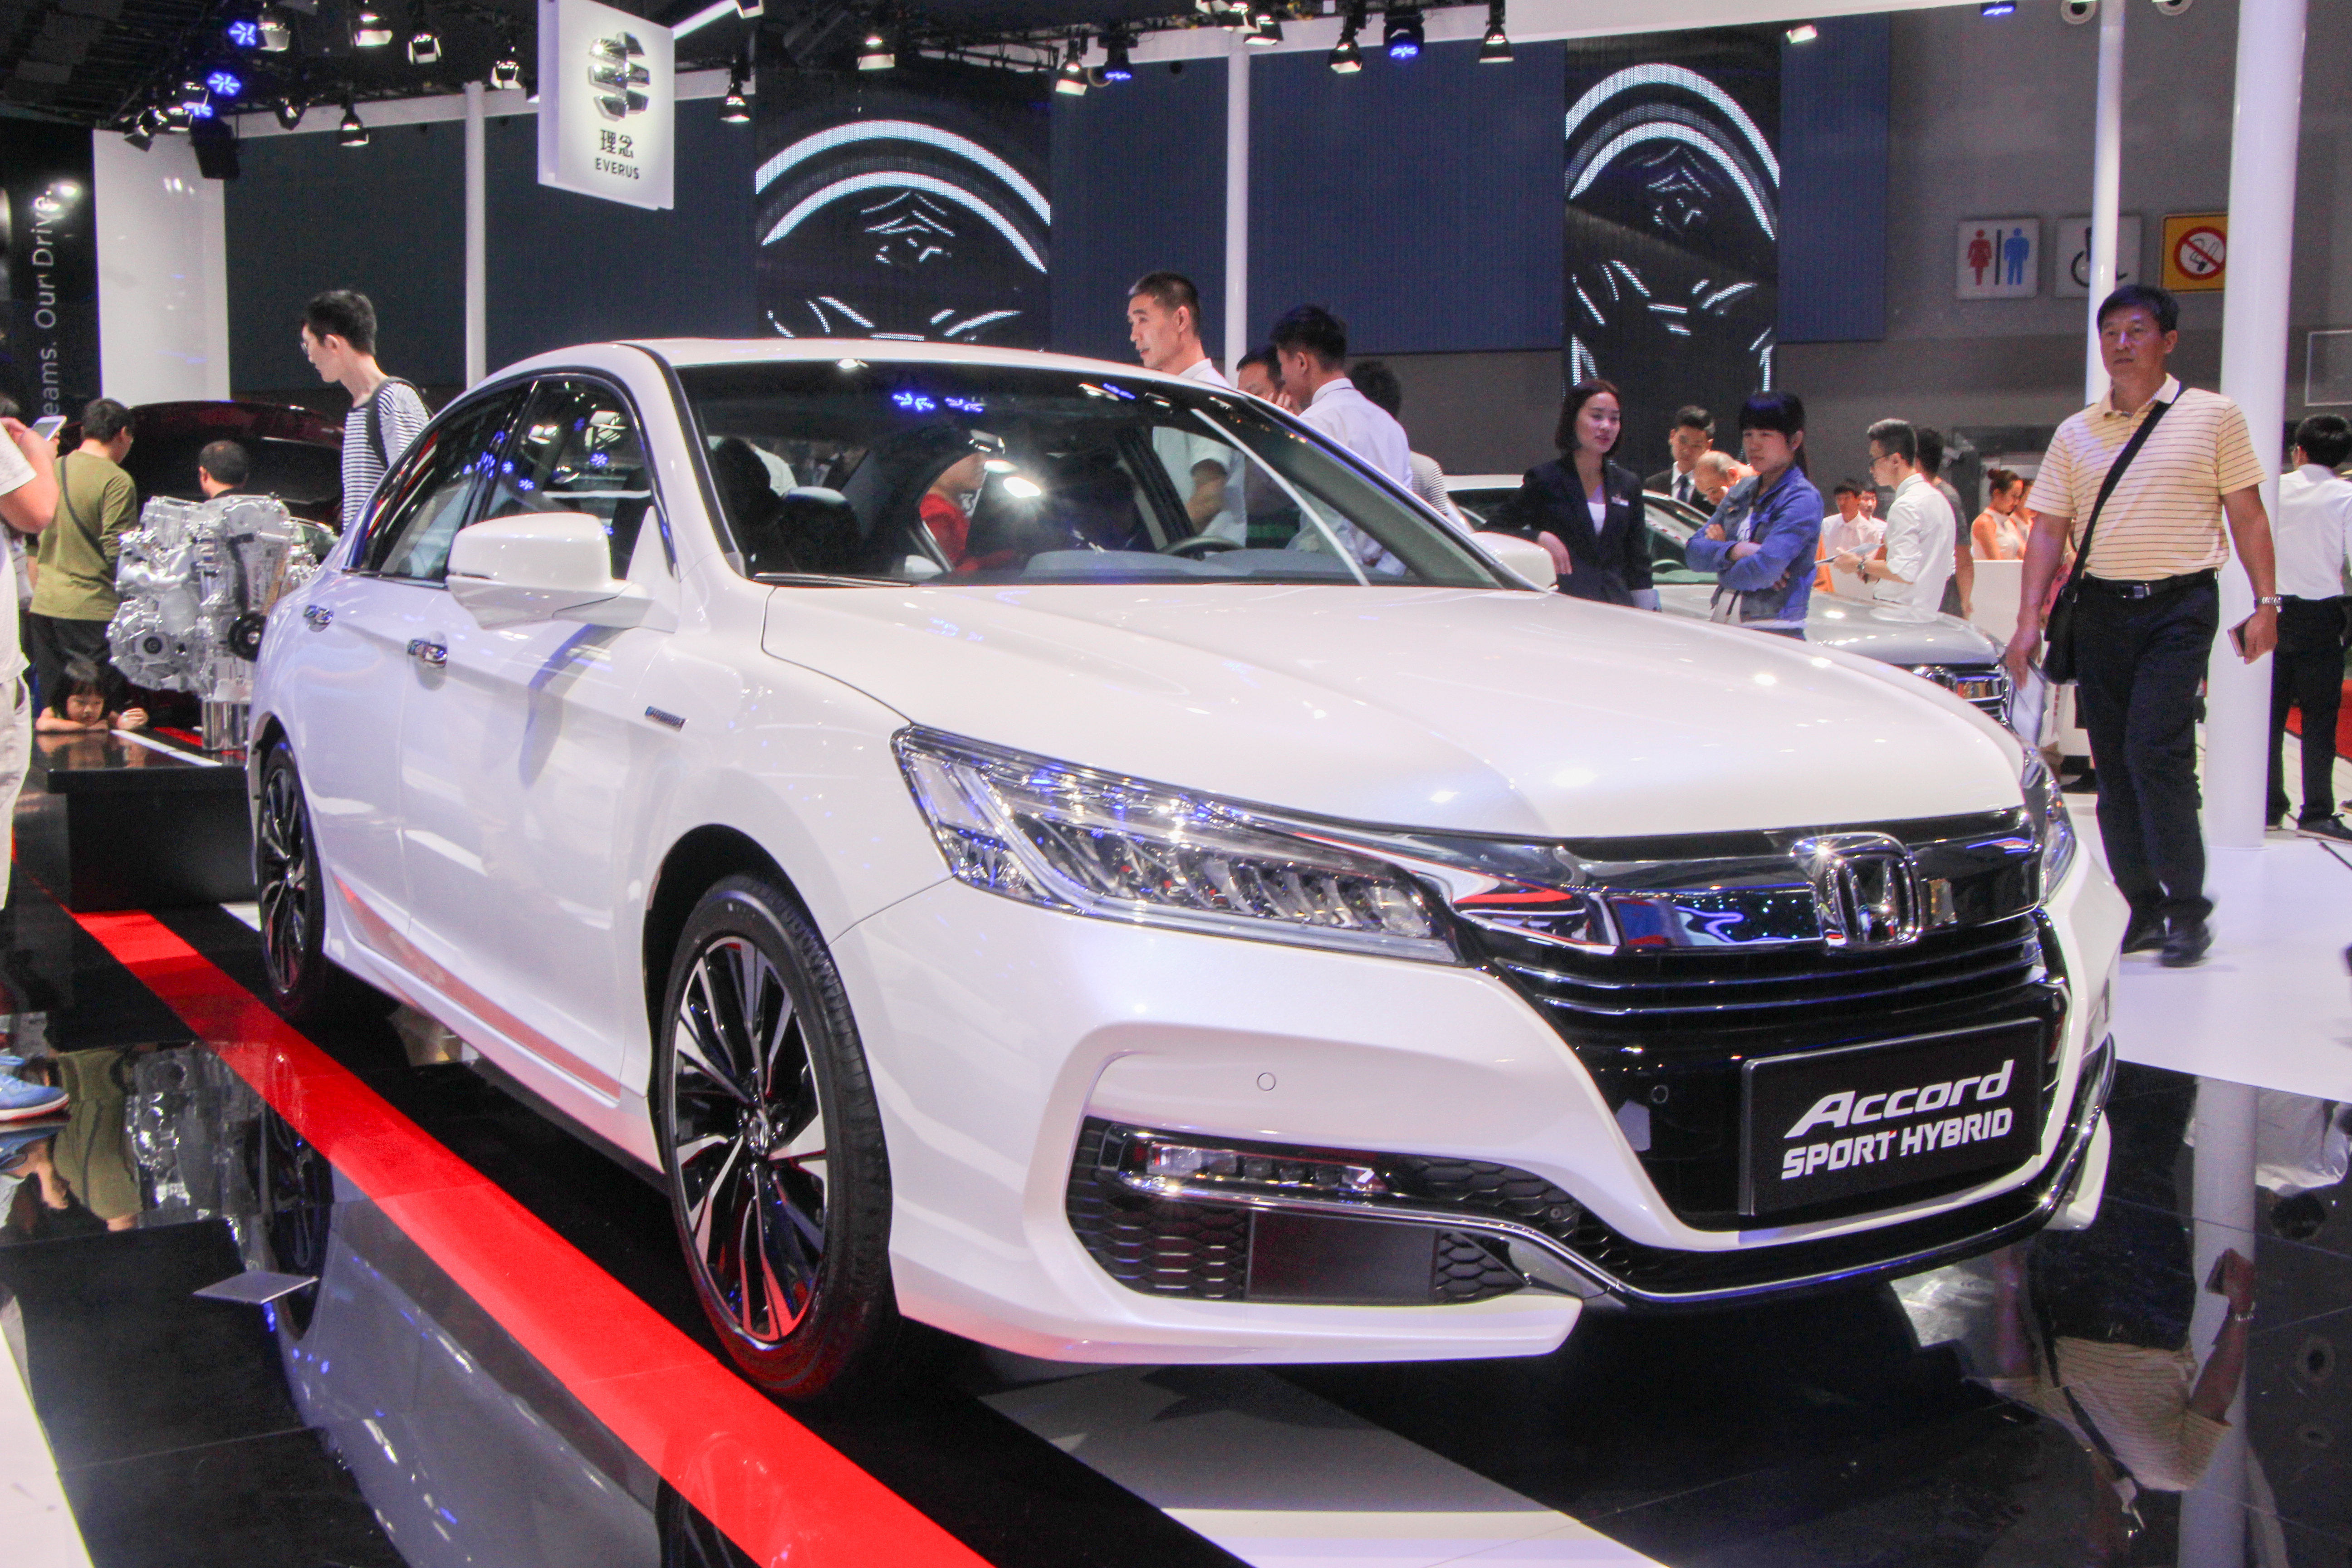 new launched accord generation hybrid specs india all price images features honda